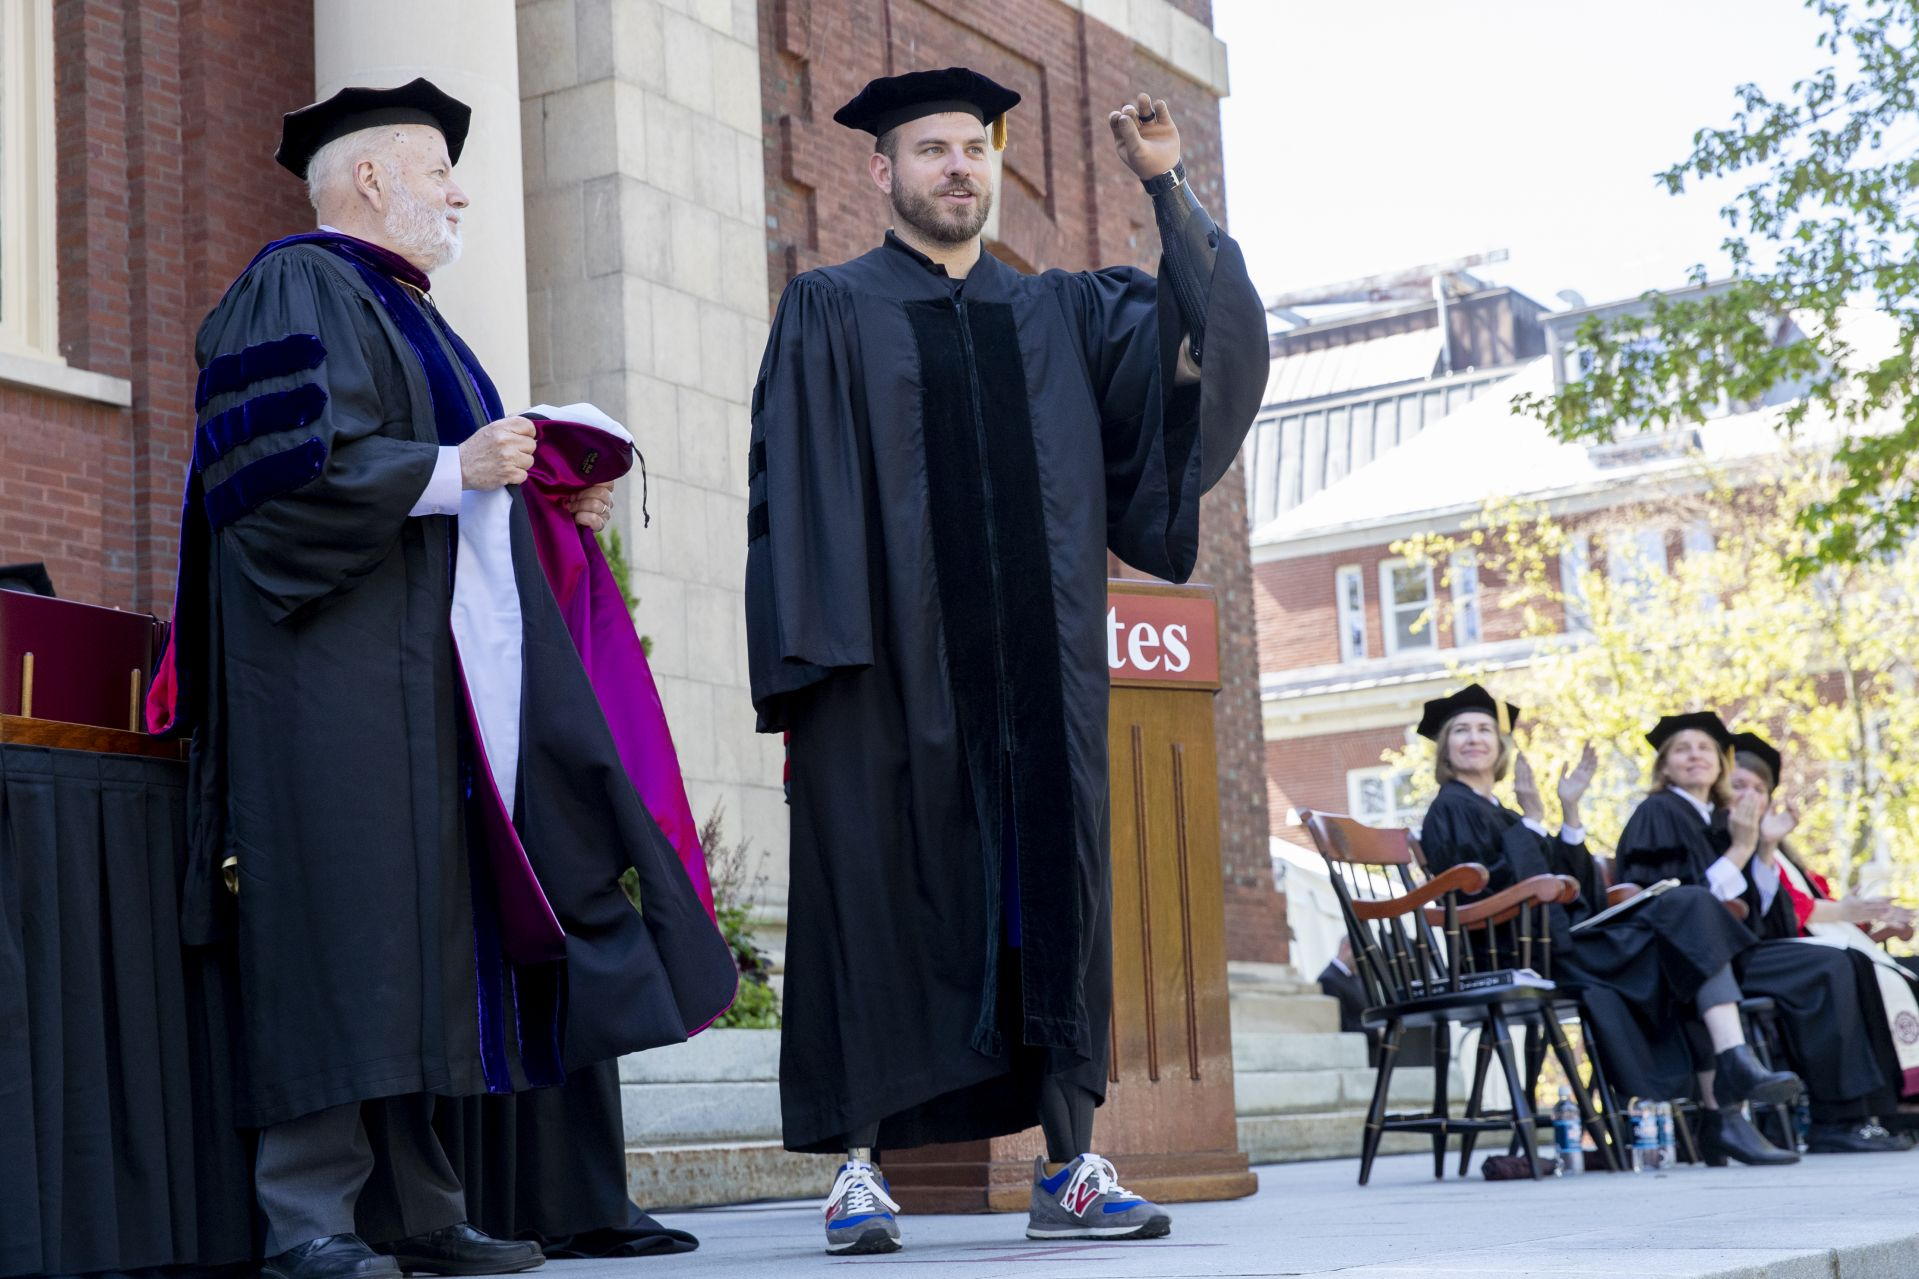 Travis Mills, a soldier injured in combat who is now an advocate for other combat veterans, receives an honorary Doctor of Humane Letters degree. Placing the collar on Mills is the college's mace bearer, Phillips Professor of Economics Michael Murray. (Phyllis Graber Jensen/Bates College)